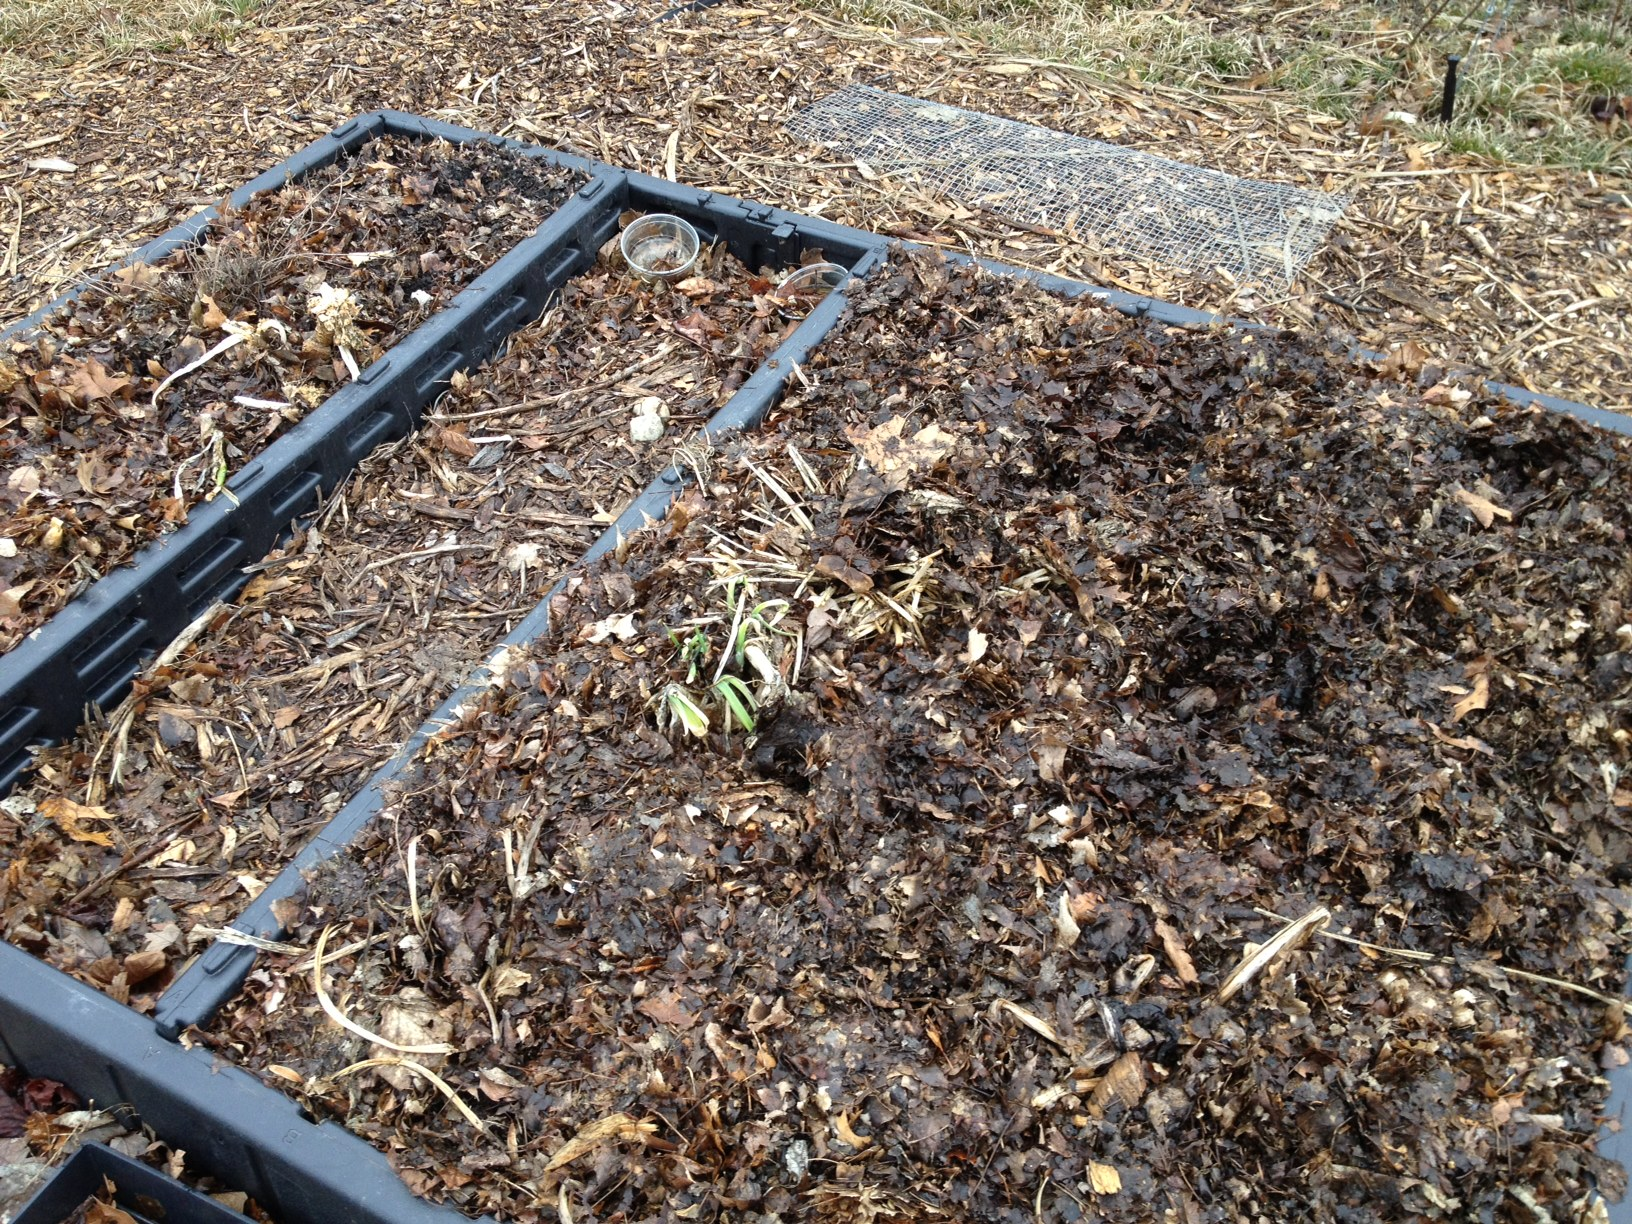 the bed bed a reclaimed sleep number bed frame filled with compost and leaf - Sleep Number Bed Frame